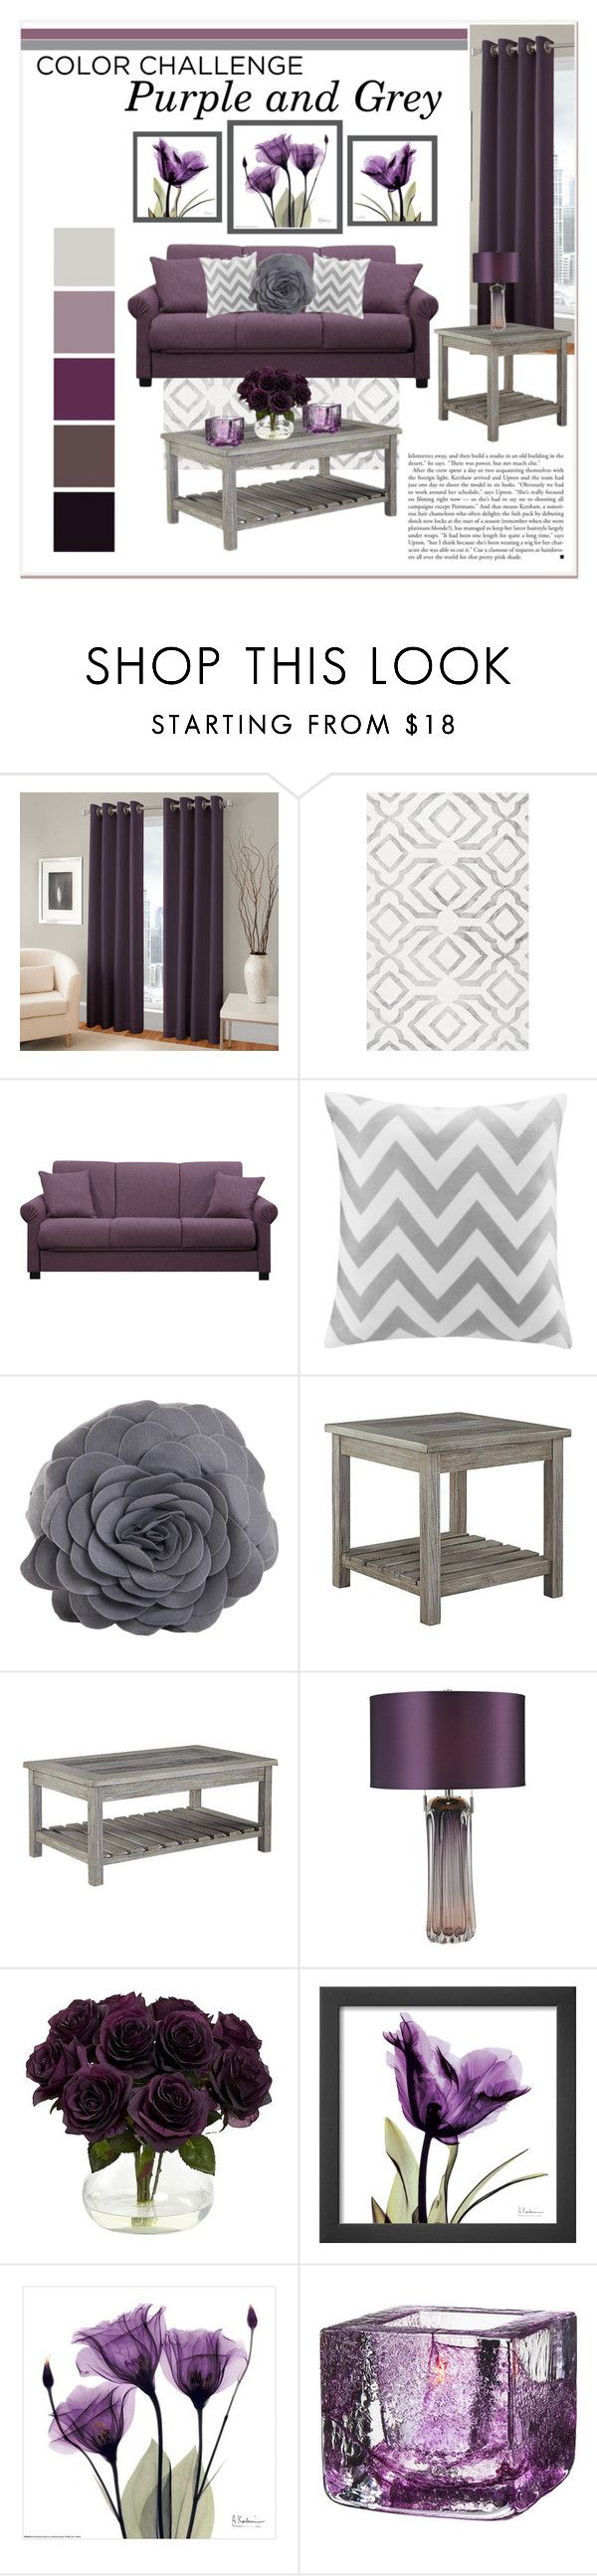 Brown and purple living room -  Purple And Grey Living Room By Lalalaballa22 Liked On Polyvore Featuring Interior